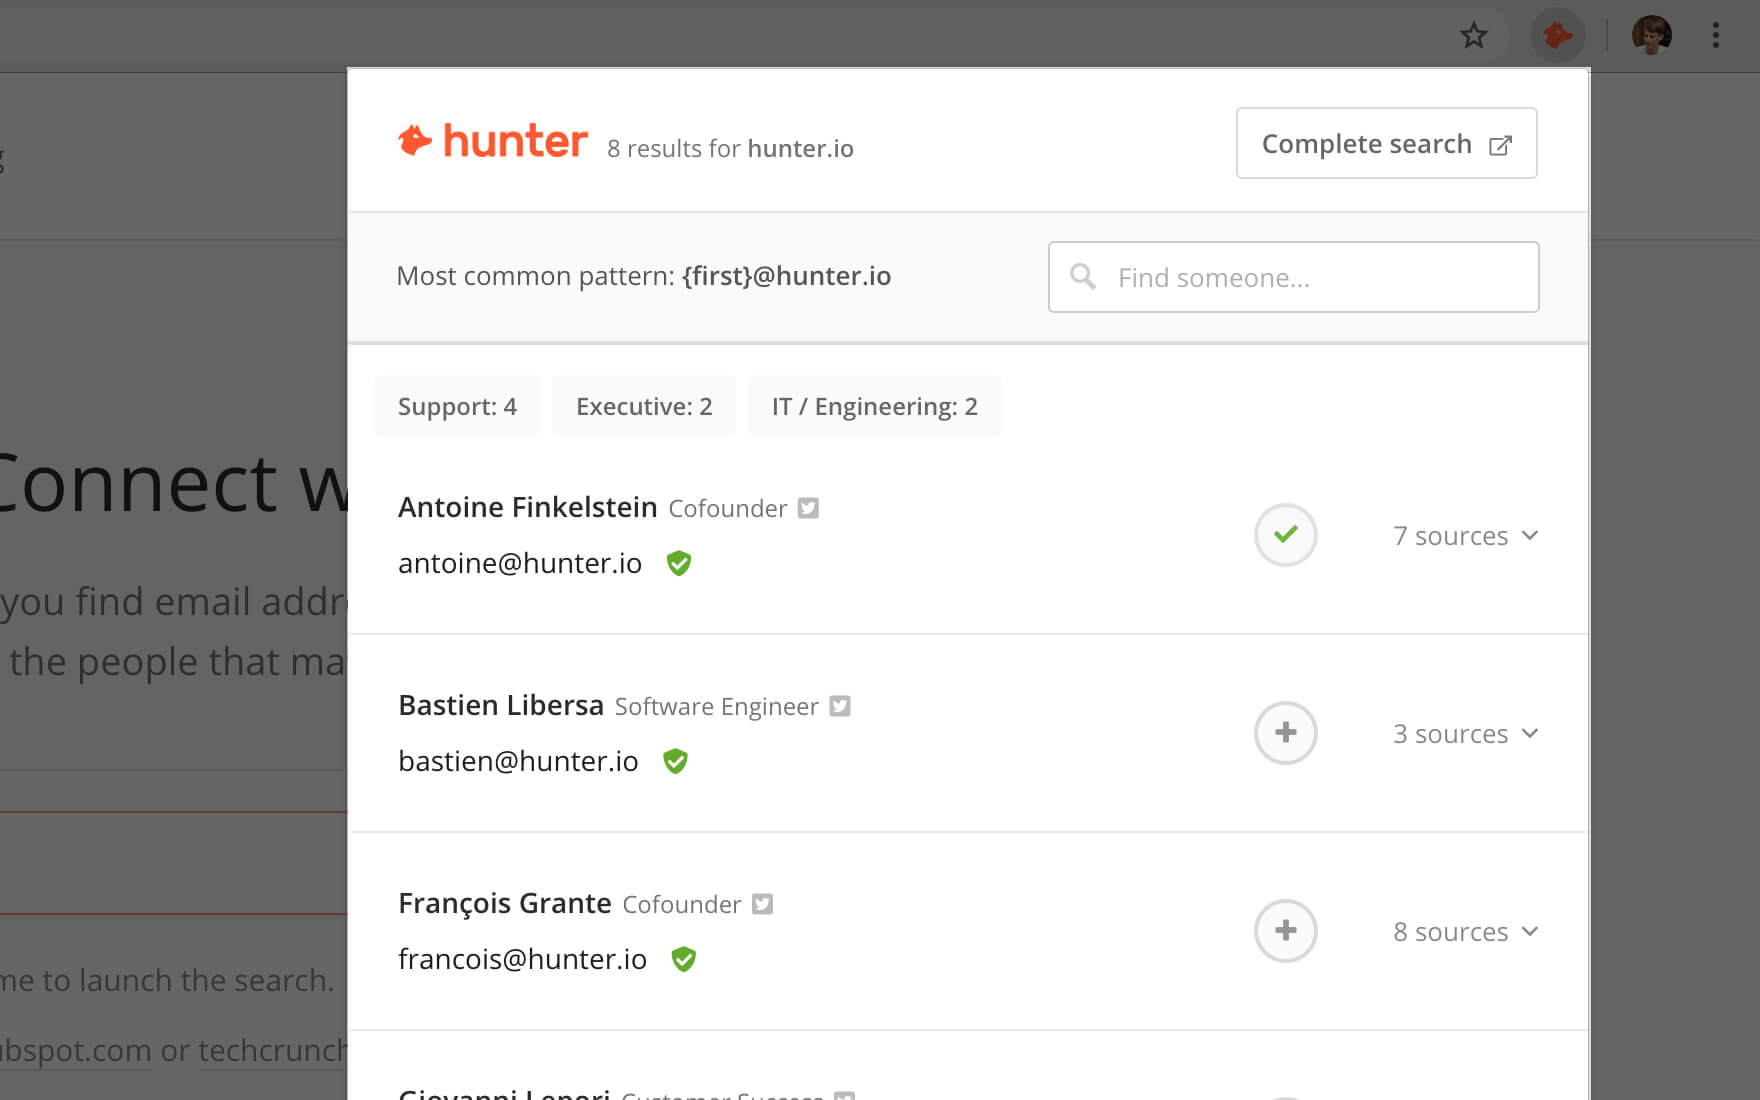 hunter.io